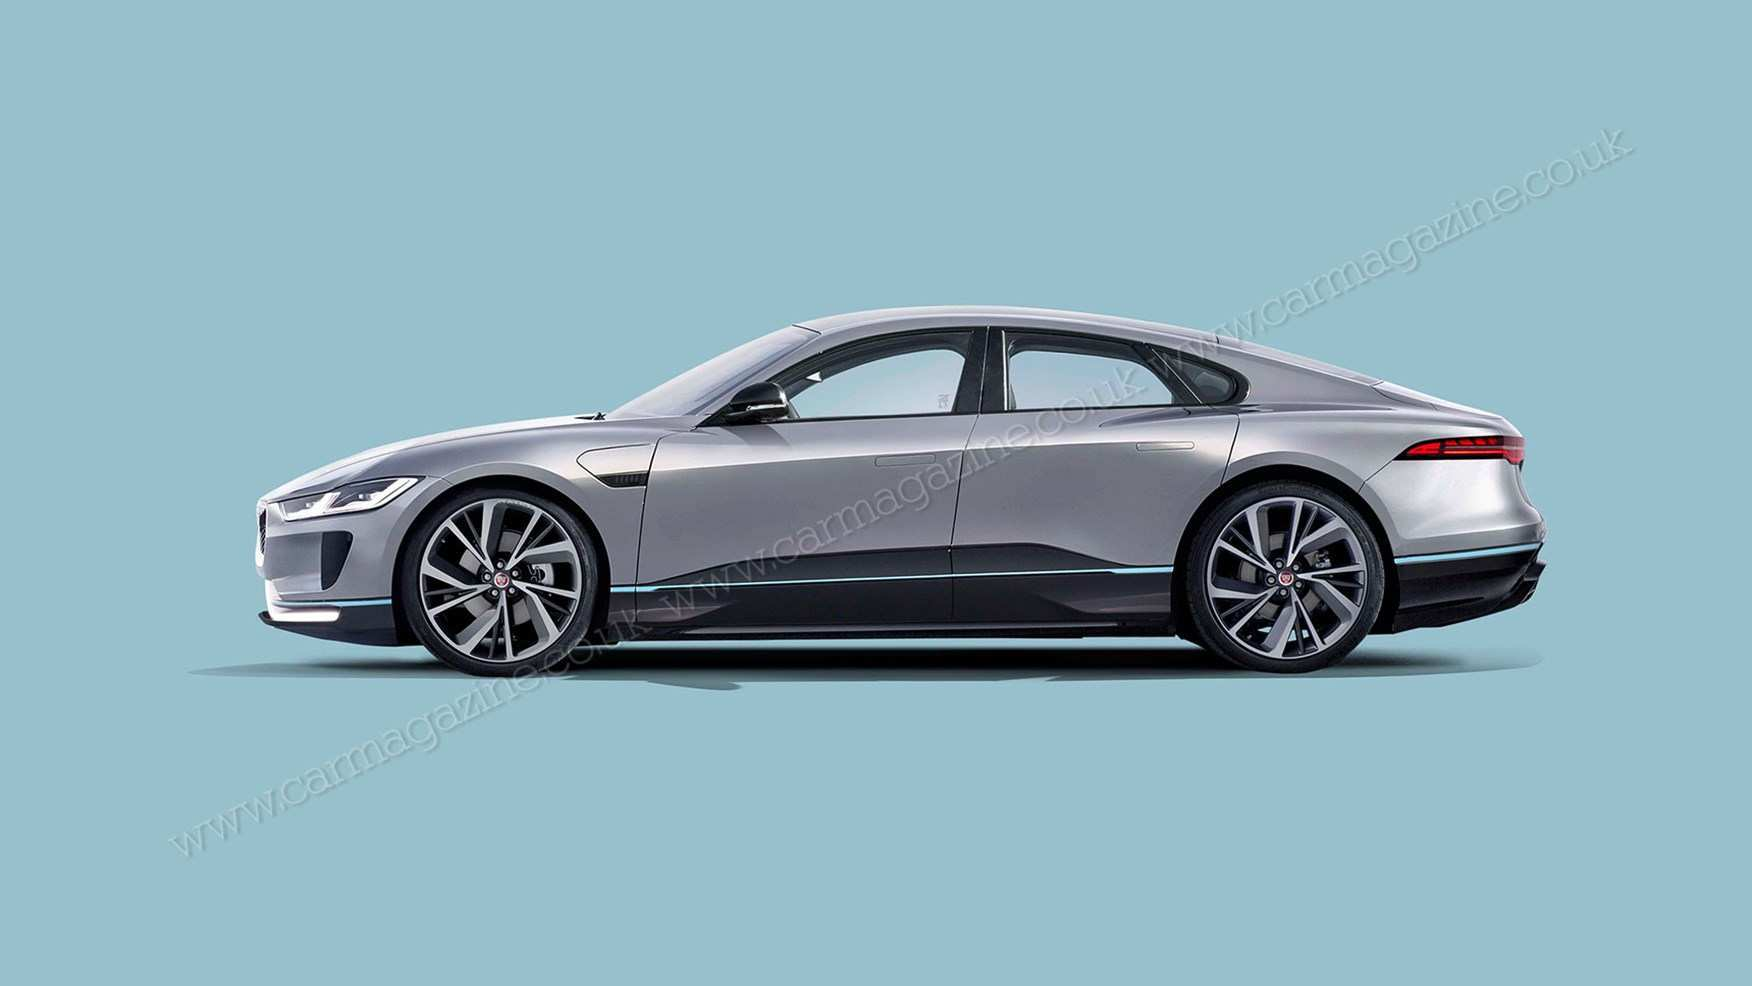 92 New Jaguar Xj 2020 Spy Release Date And Concept